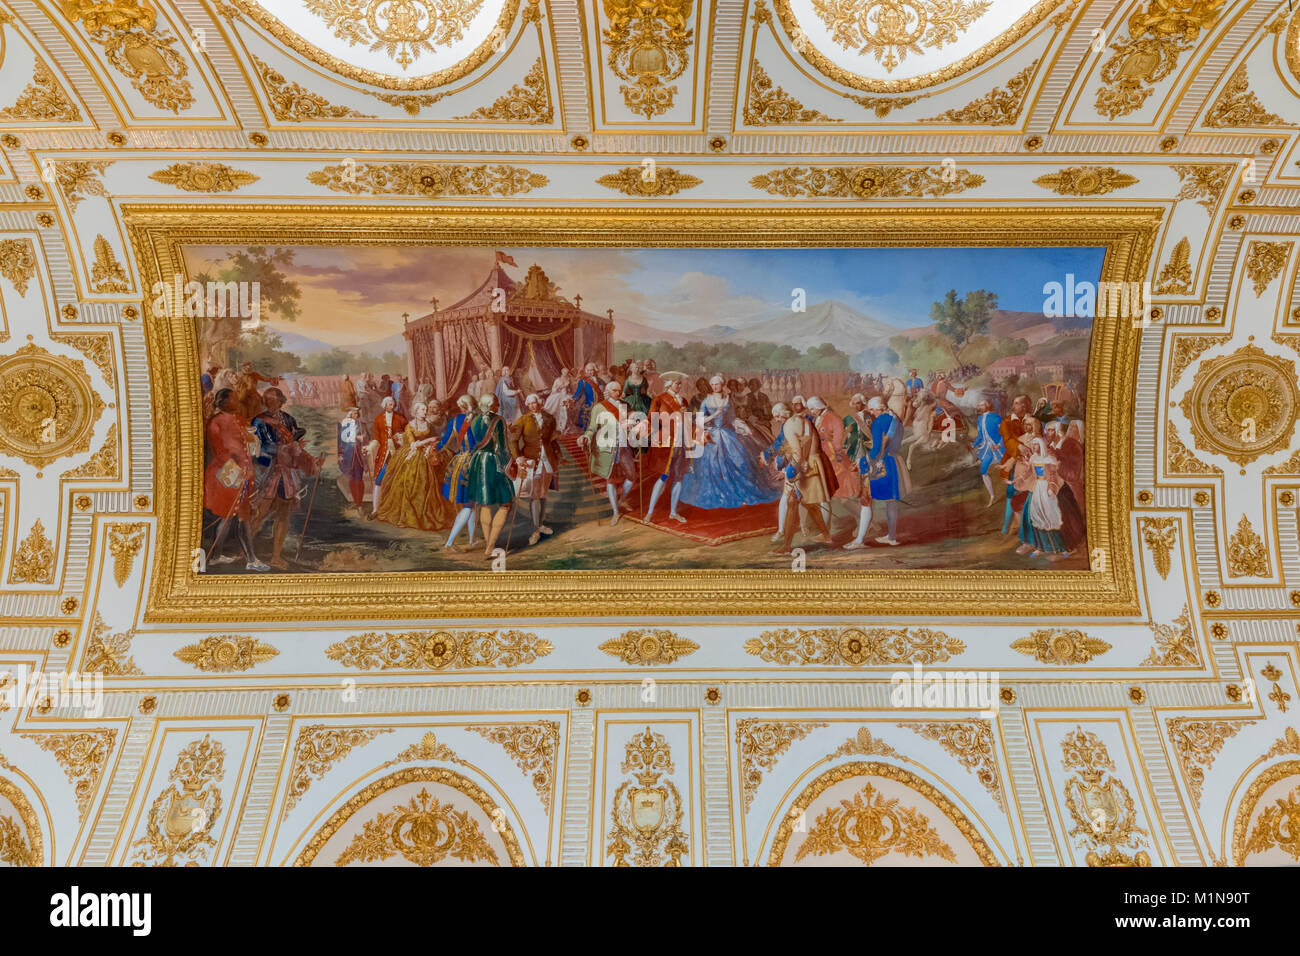 The apartments of the Royal Palace: The throne room (Caserta Royal Palace) Stock Photo